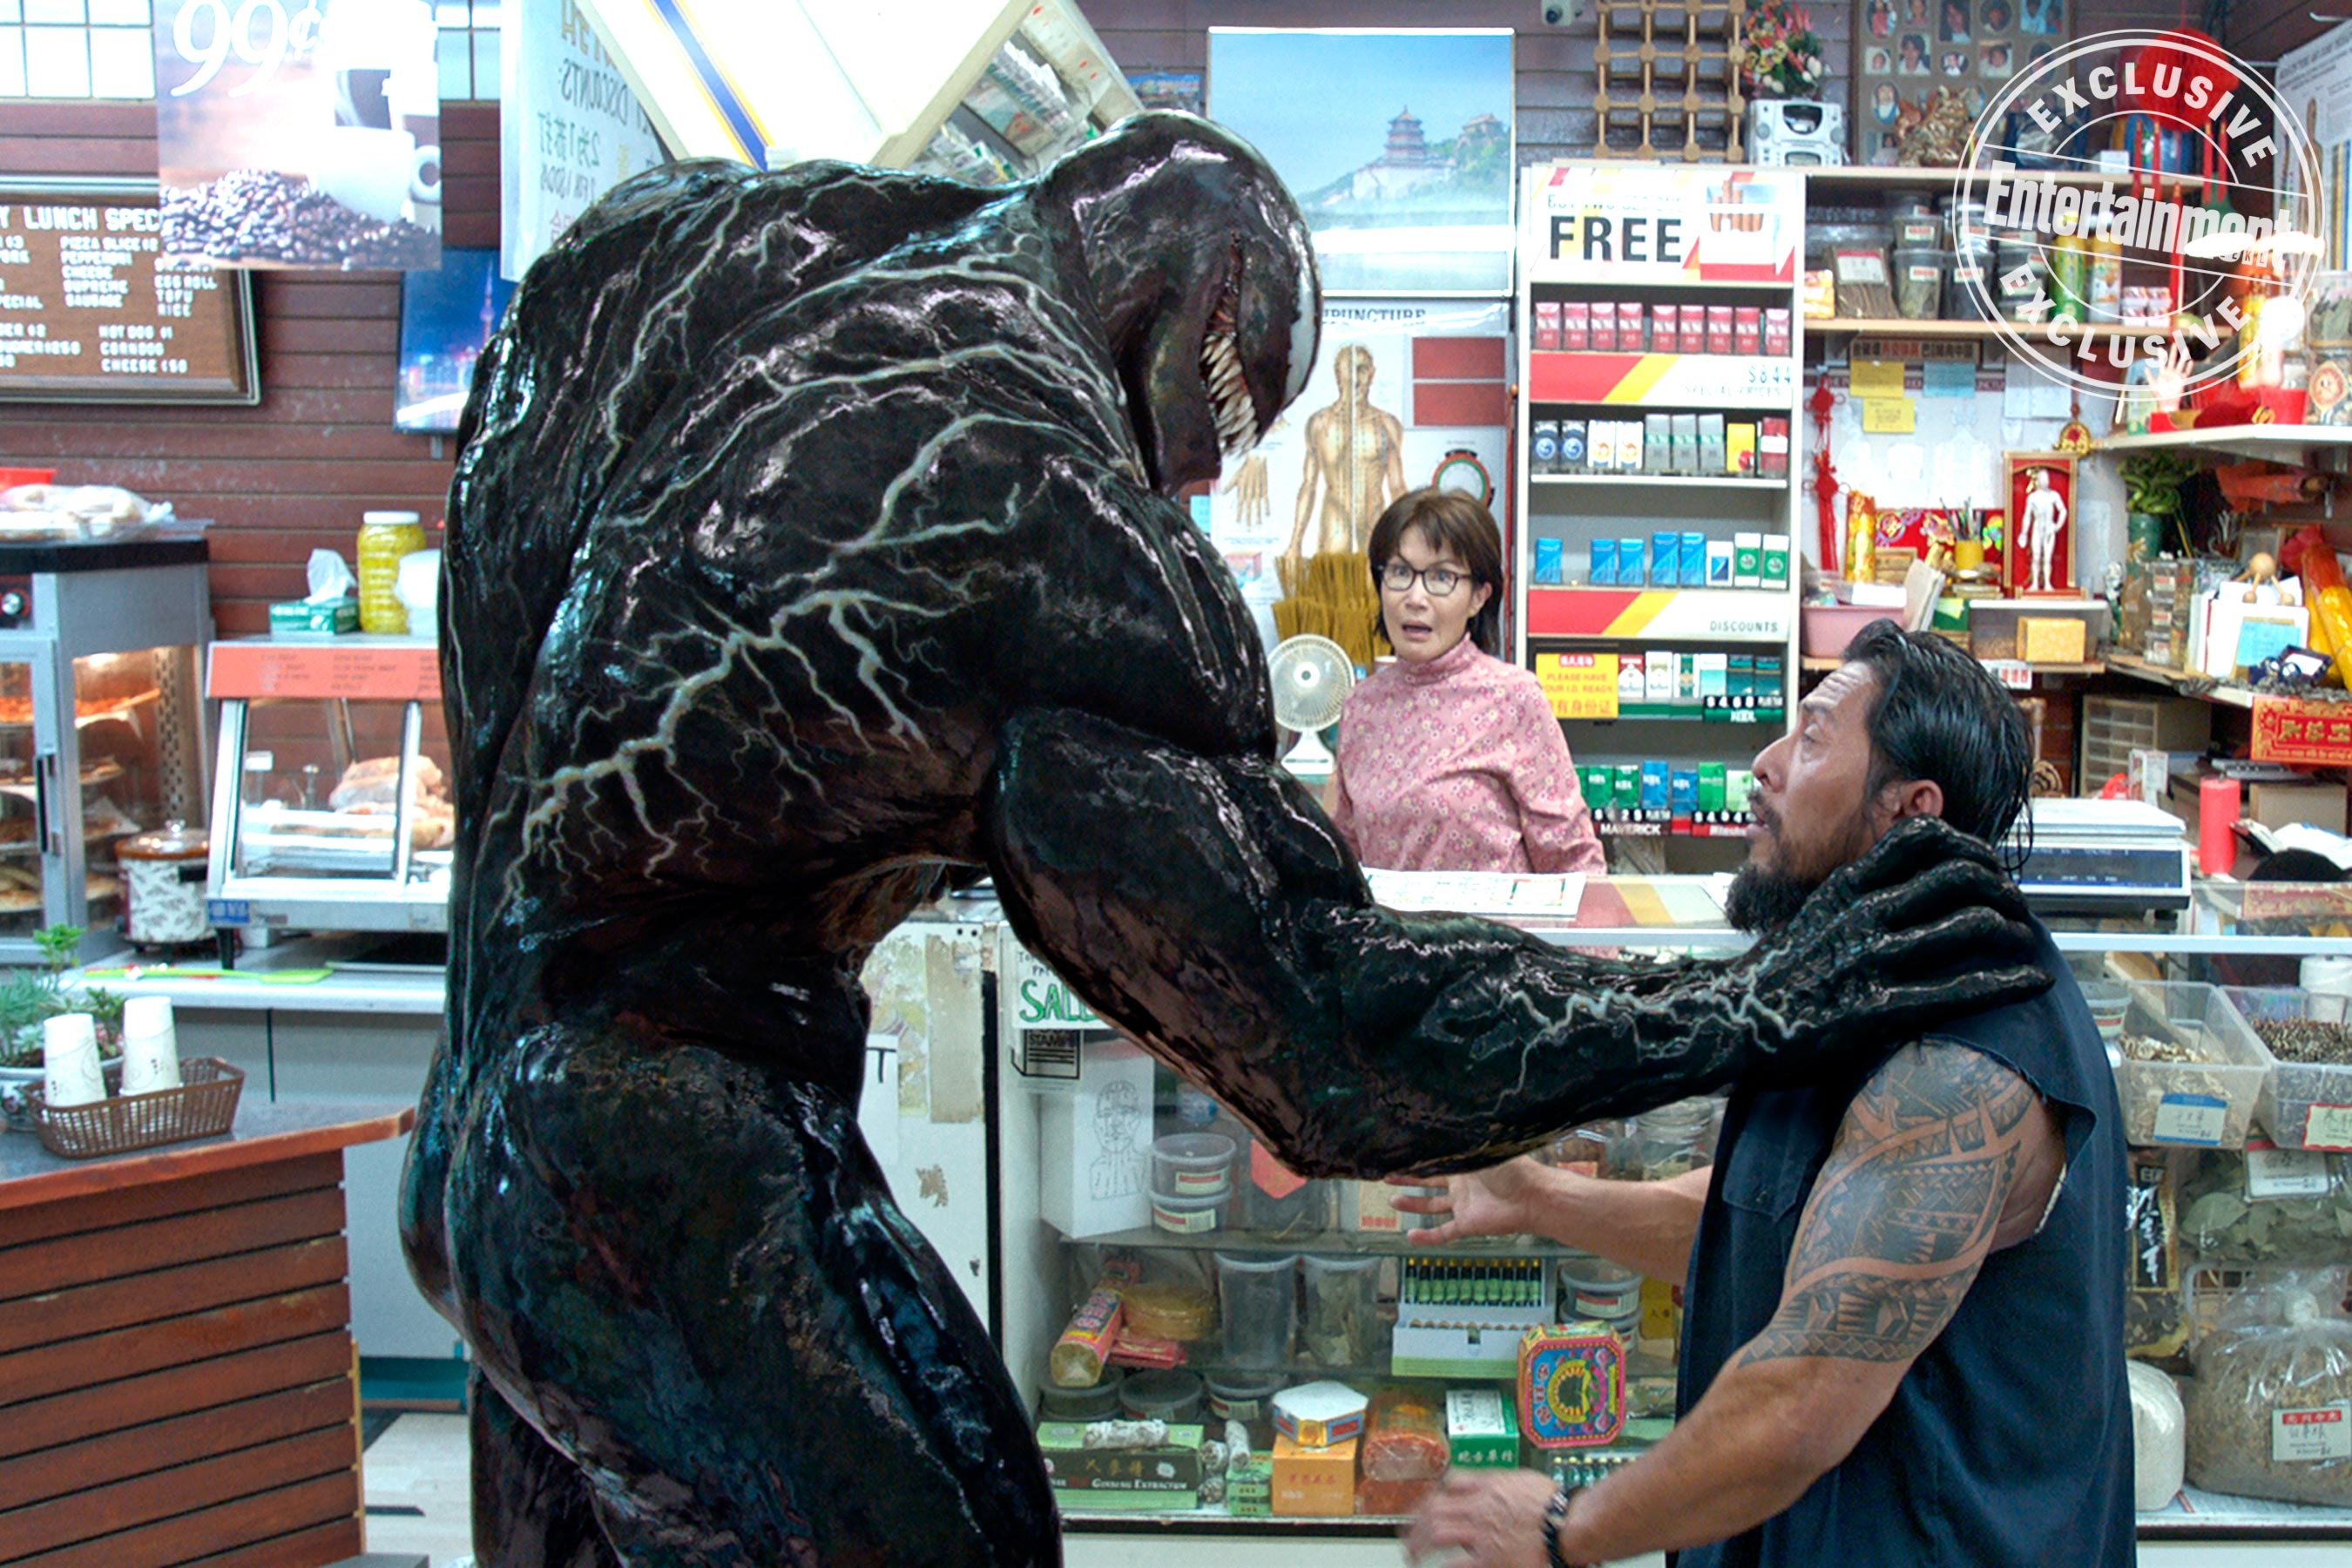 New Venom Image Plus PG13 Rating